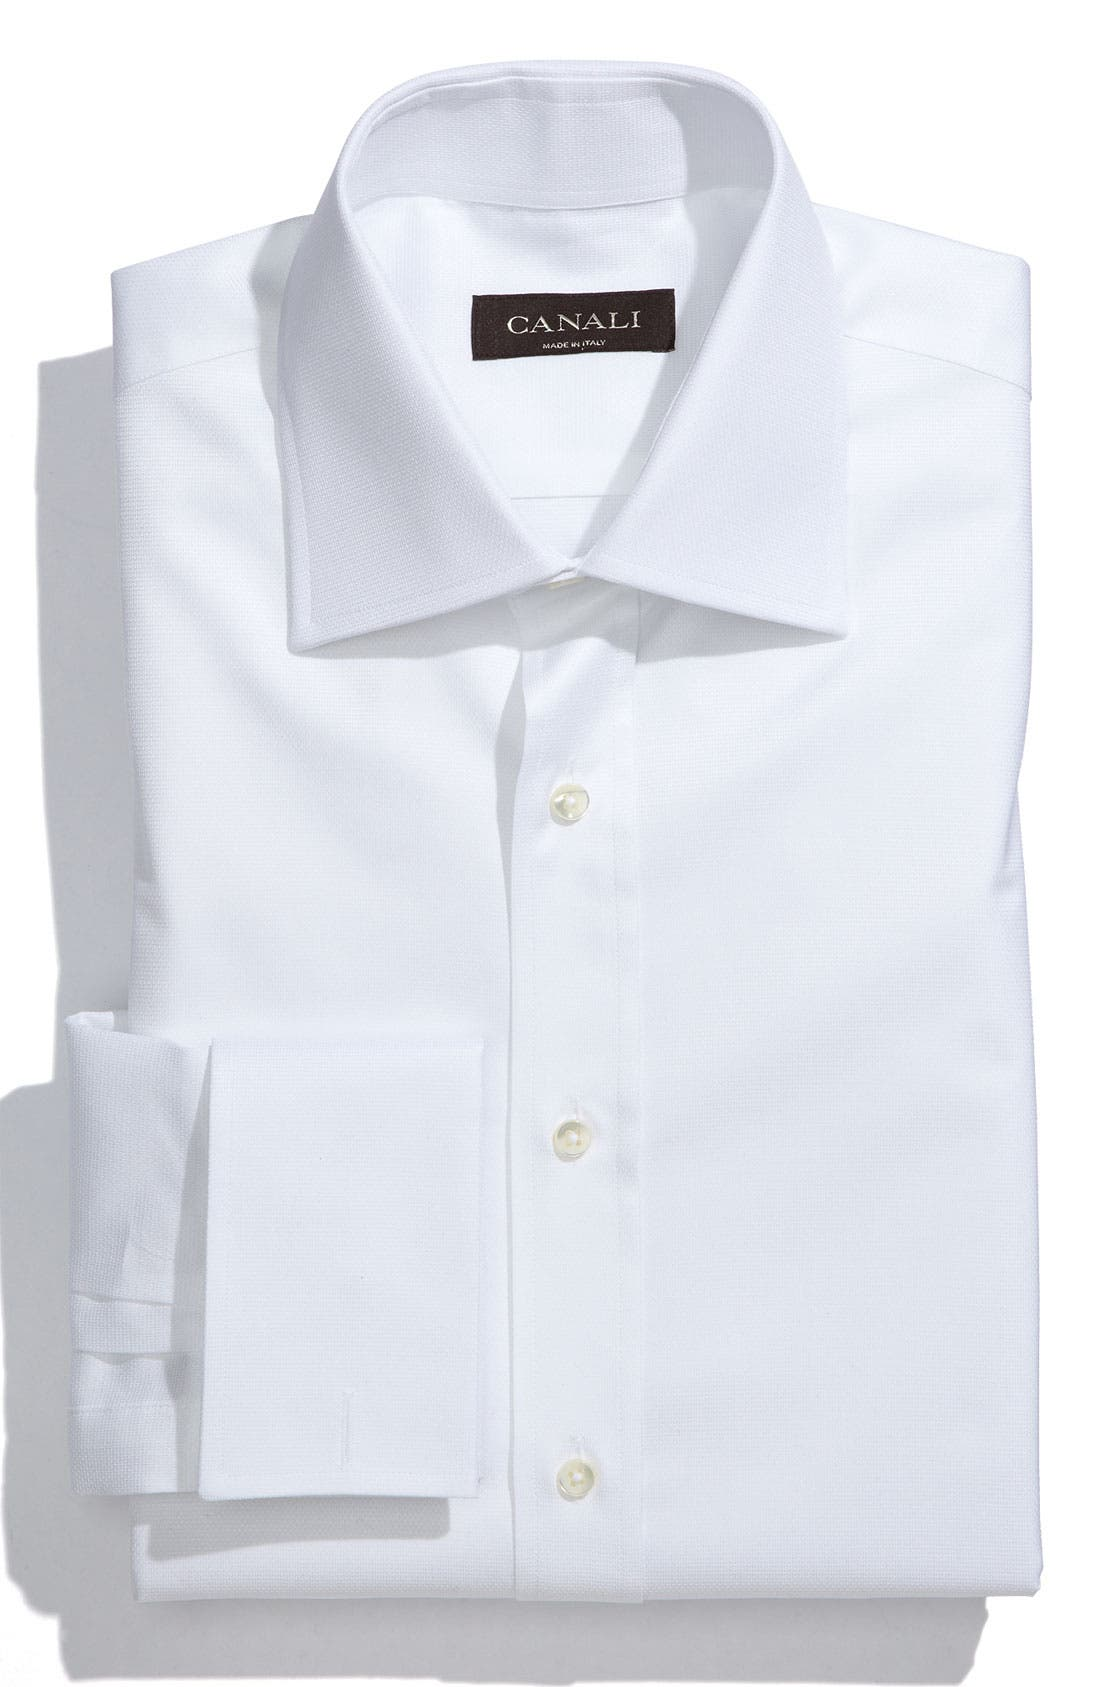 Regular Fit Dress Shirt,                             Main thumbnail 1, color,                             100